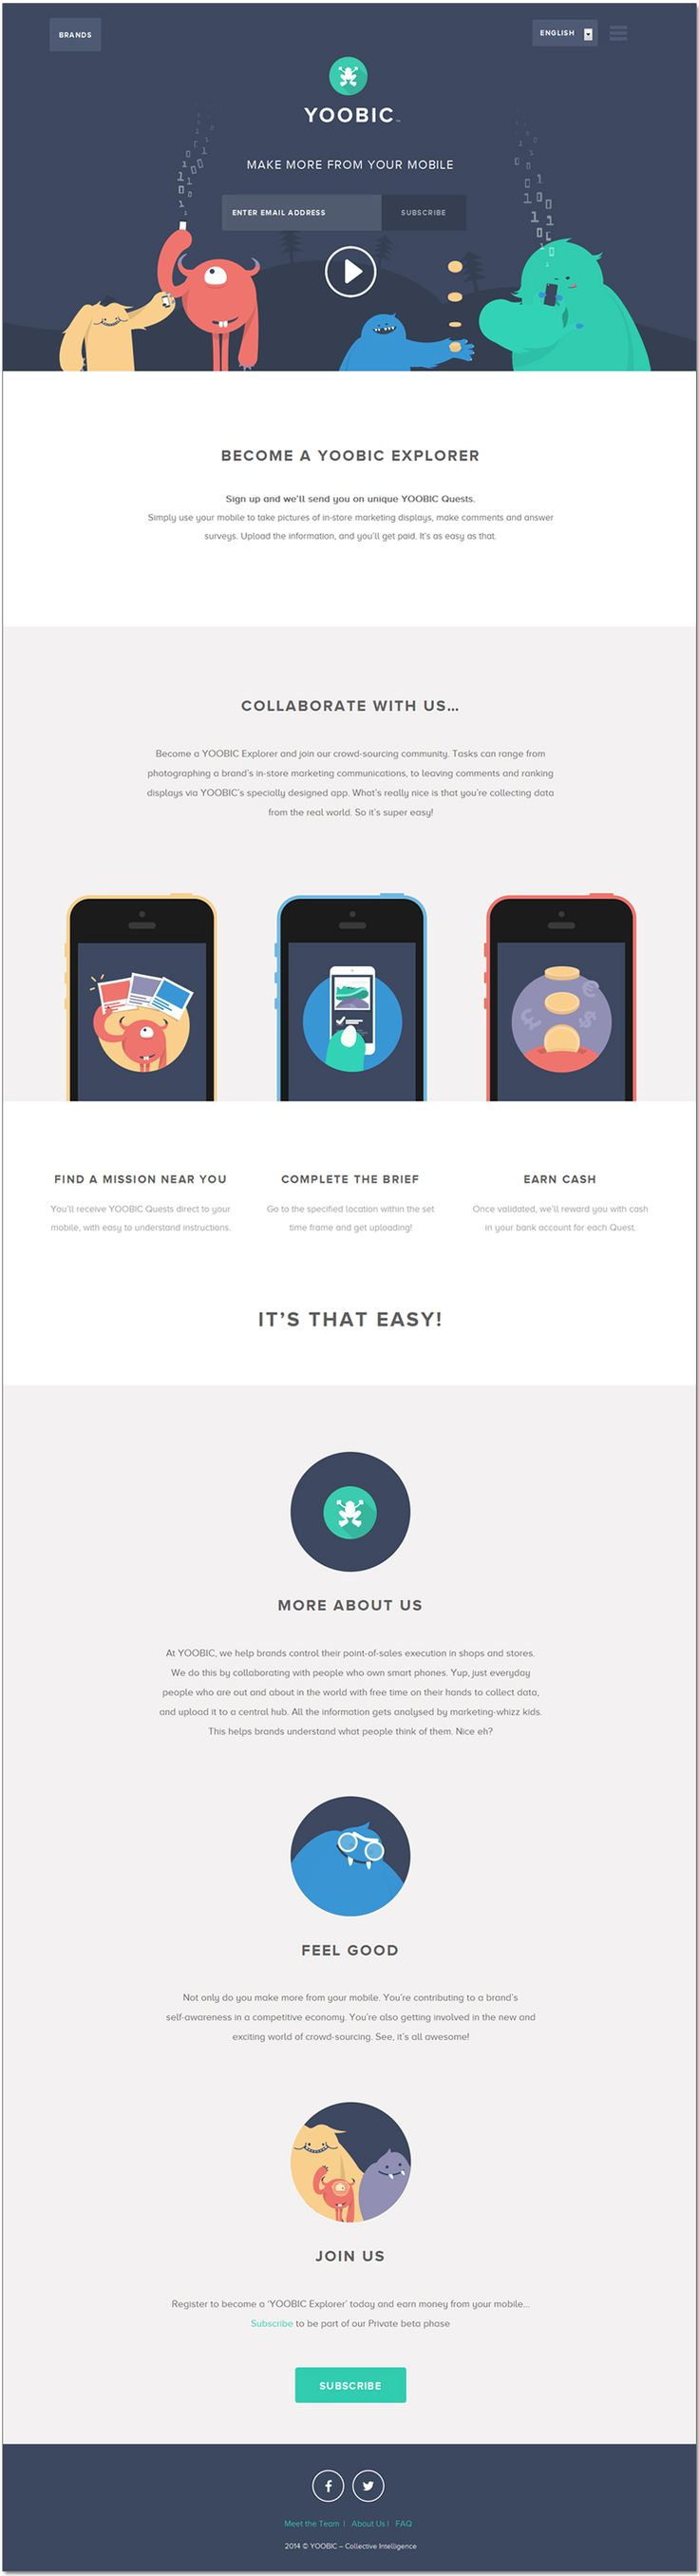 139 best :::: web design :::: images on Pinterest | Website designs ...